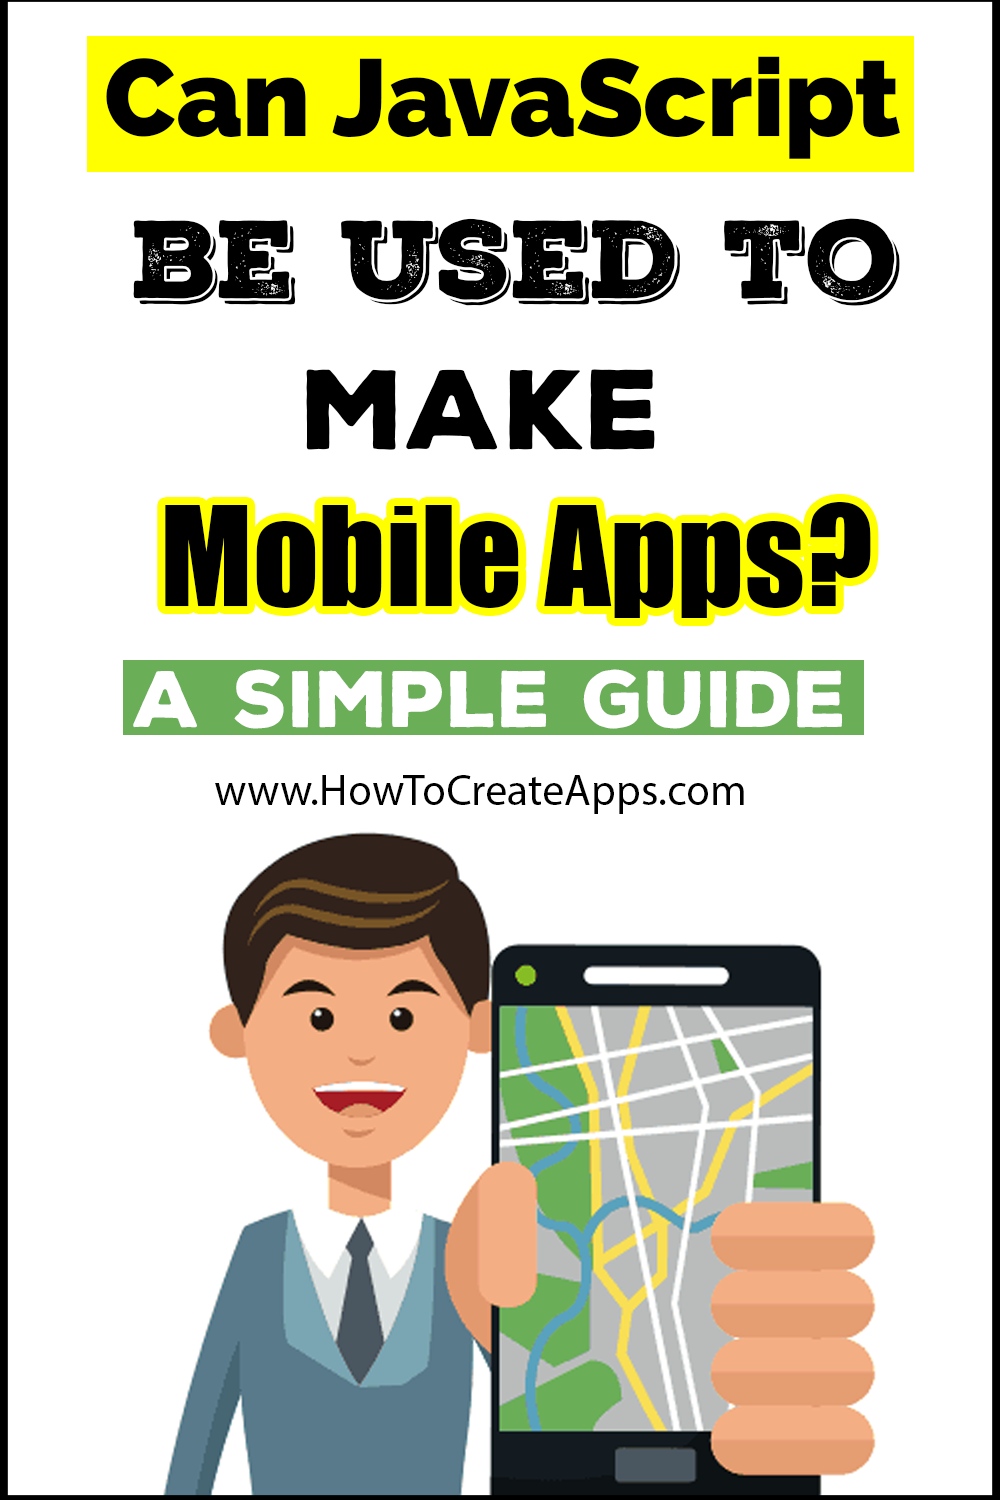 Can JavaScript be used to Make Mobile Apps? A Simple Guide